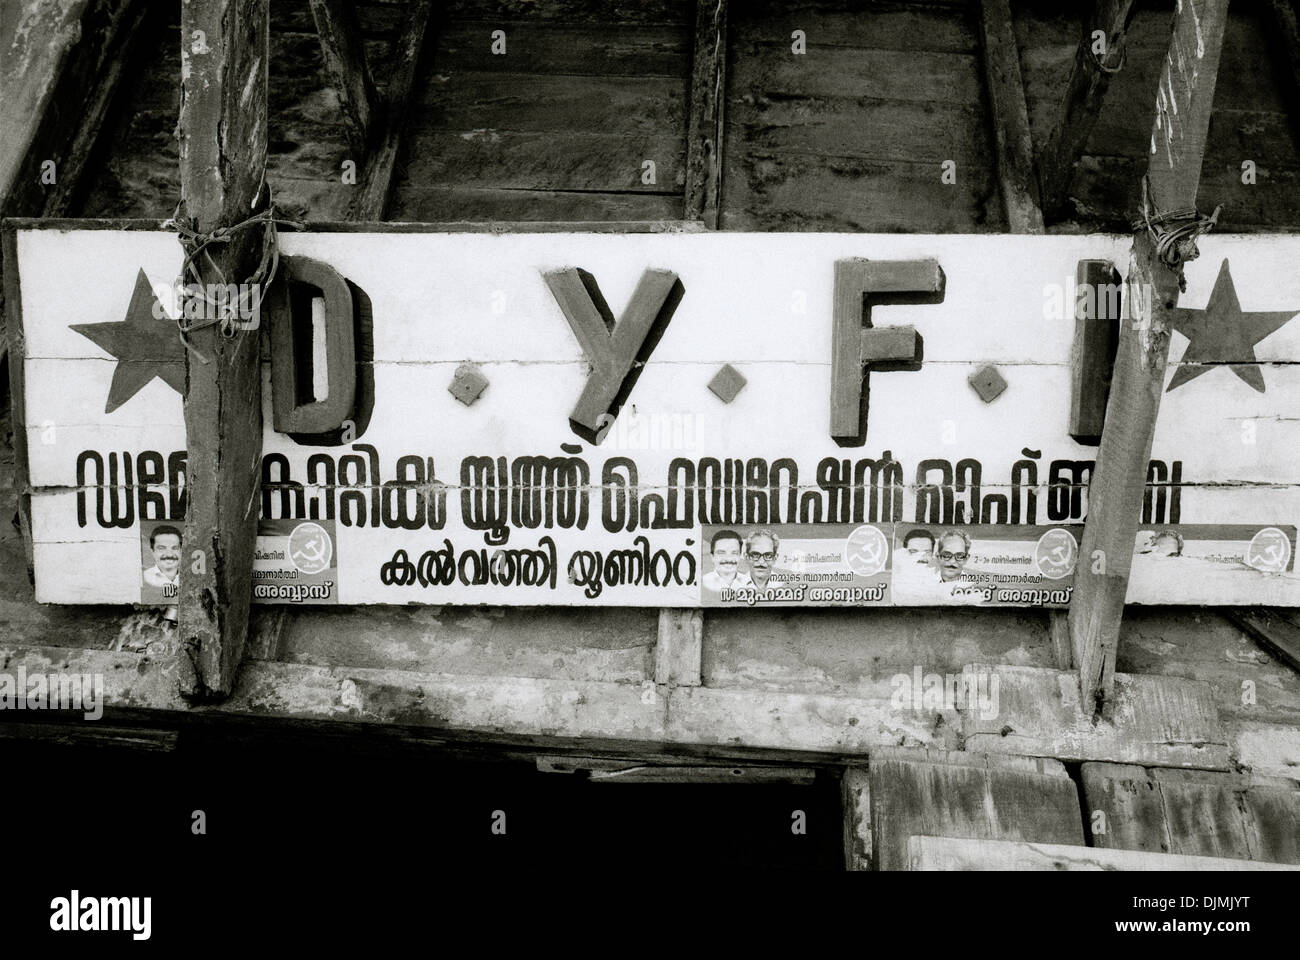 Travel Photography - Communist reading room in Kochi Cochin in Kerala in India in South Asia. Communism Politics Political - Stock Image